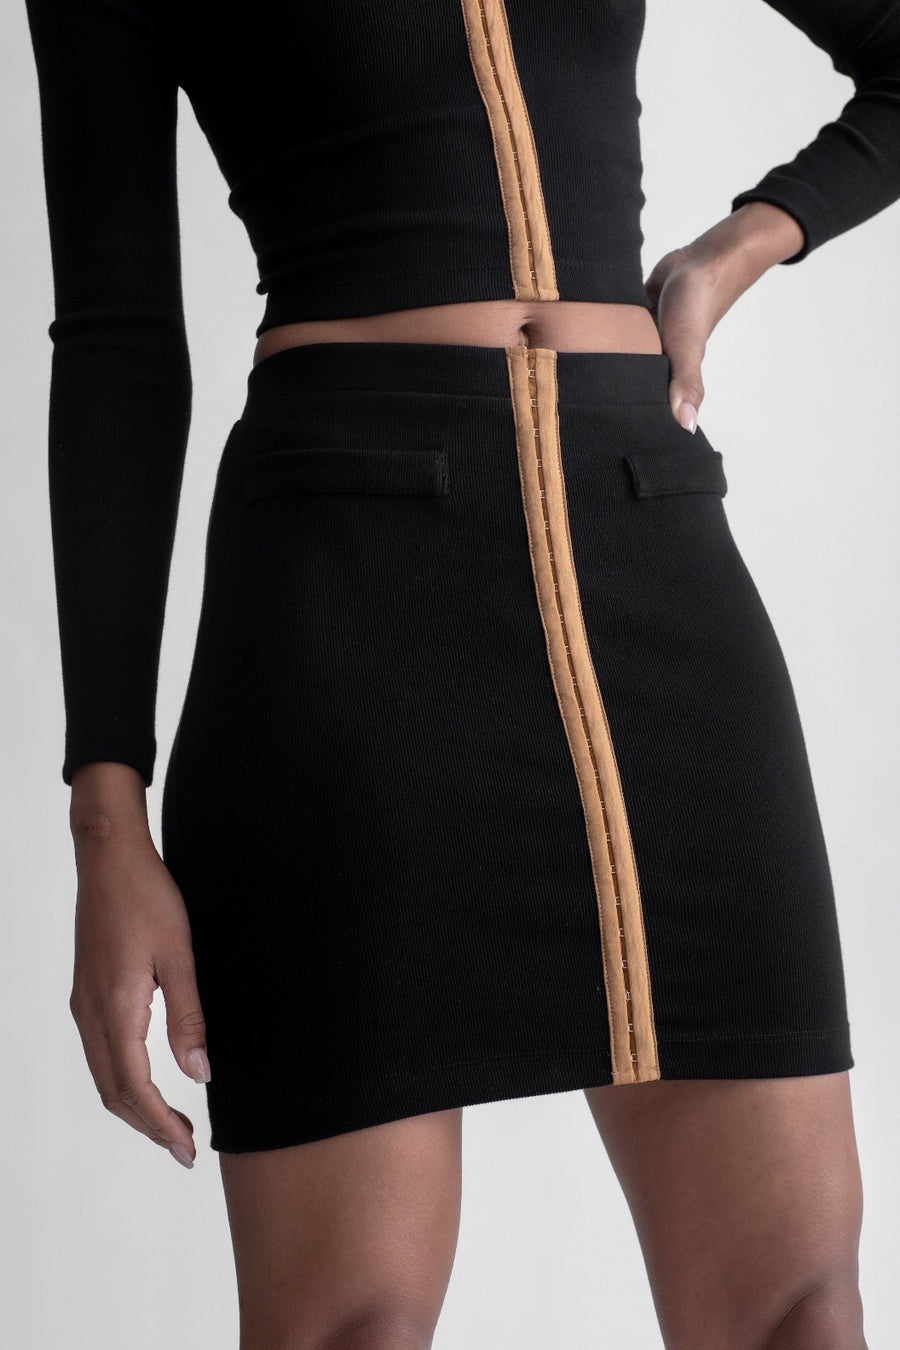 Hook & Eye Mini Skirt Black